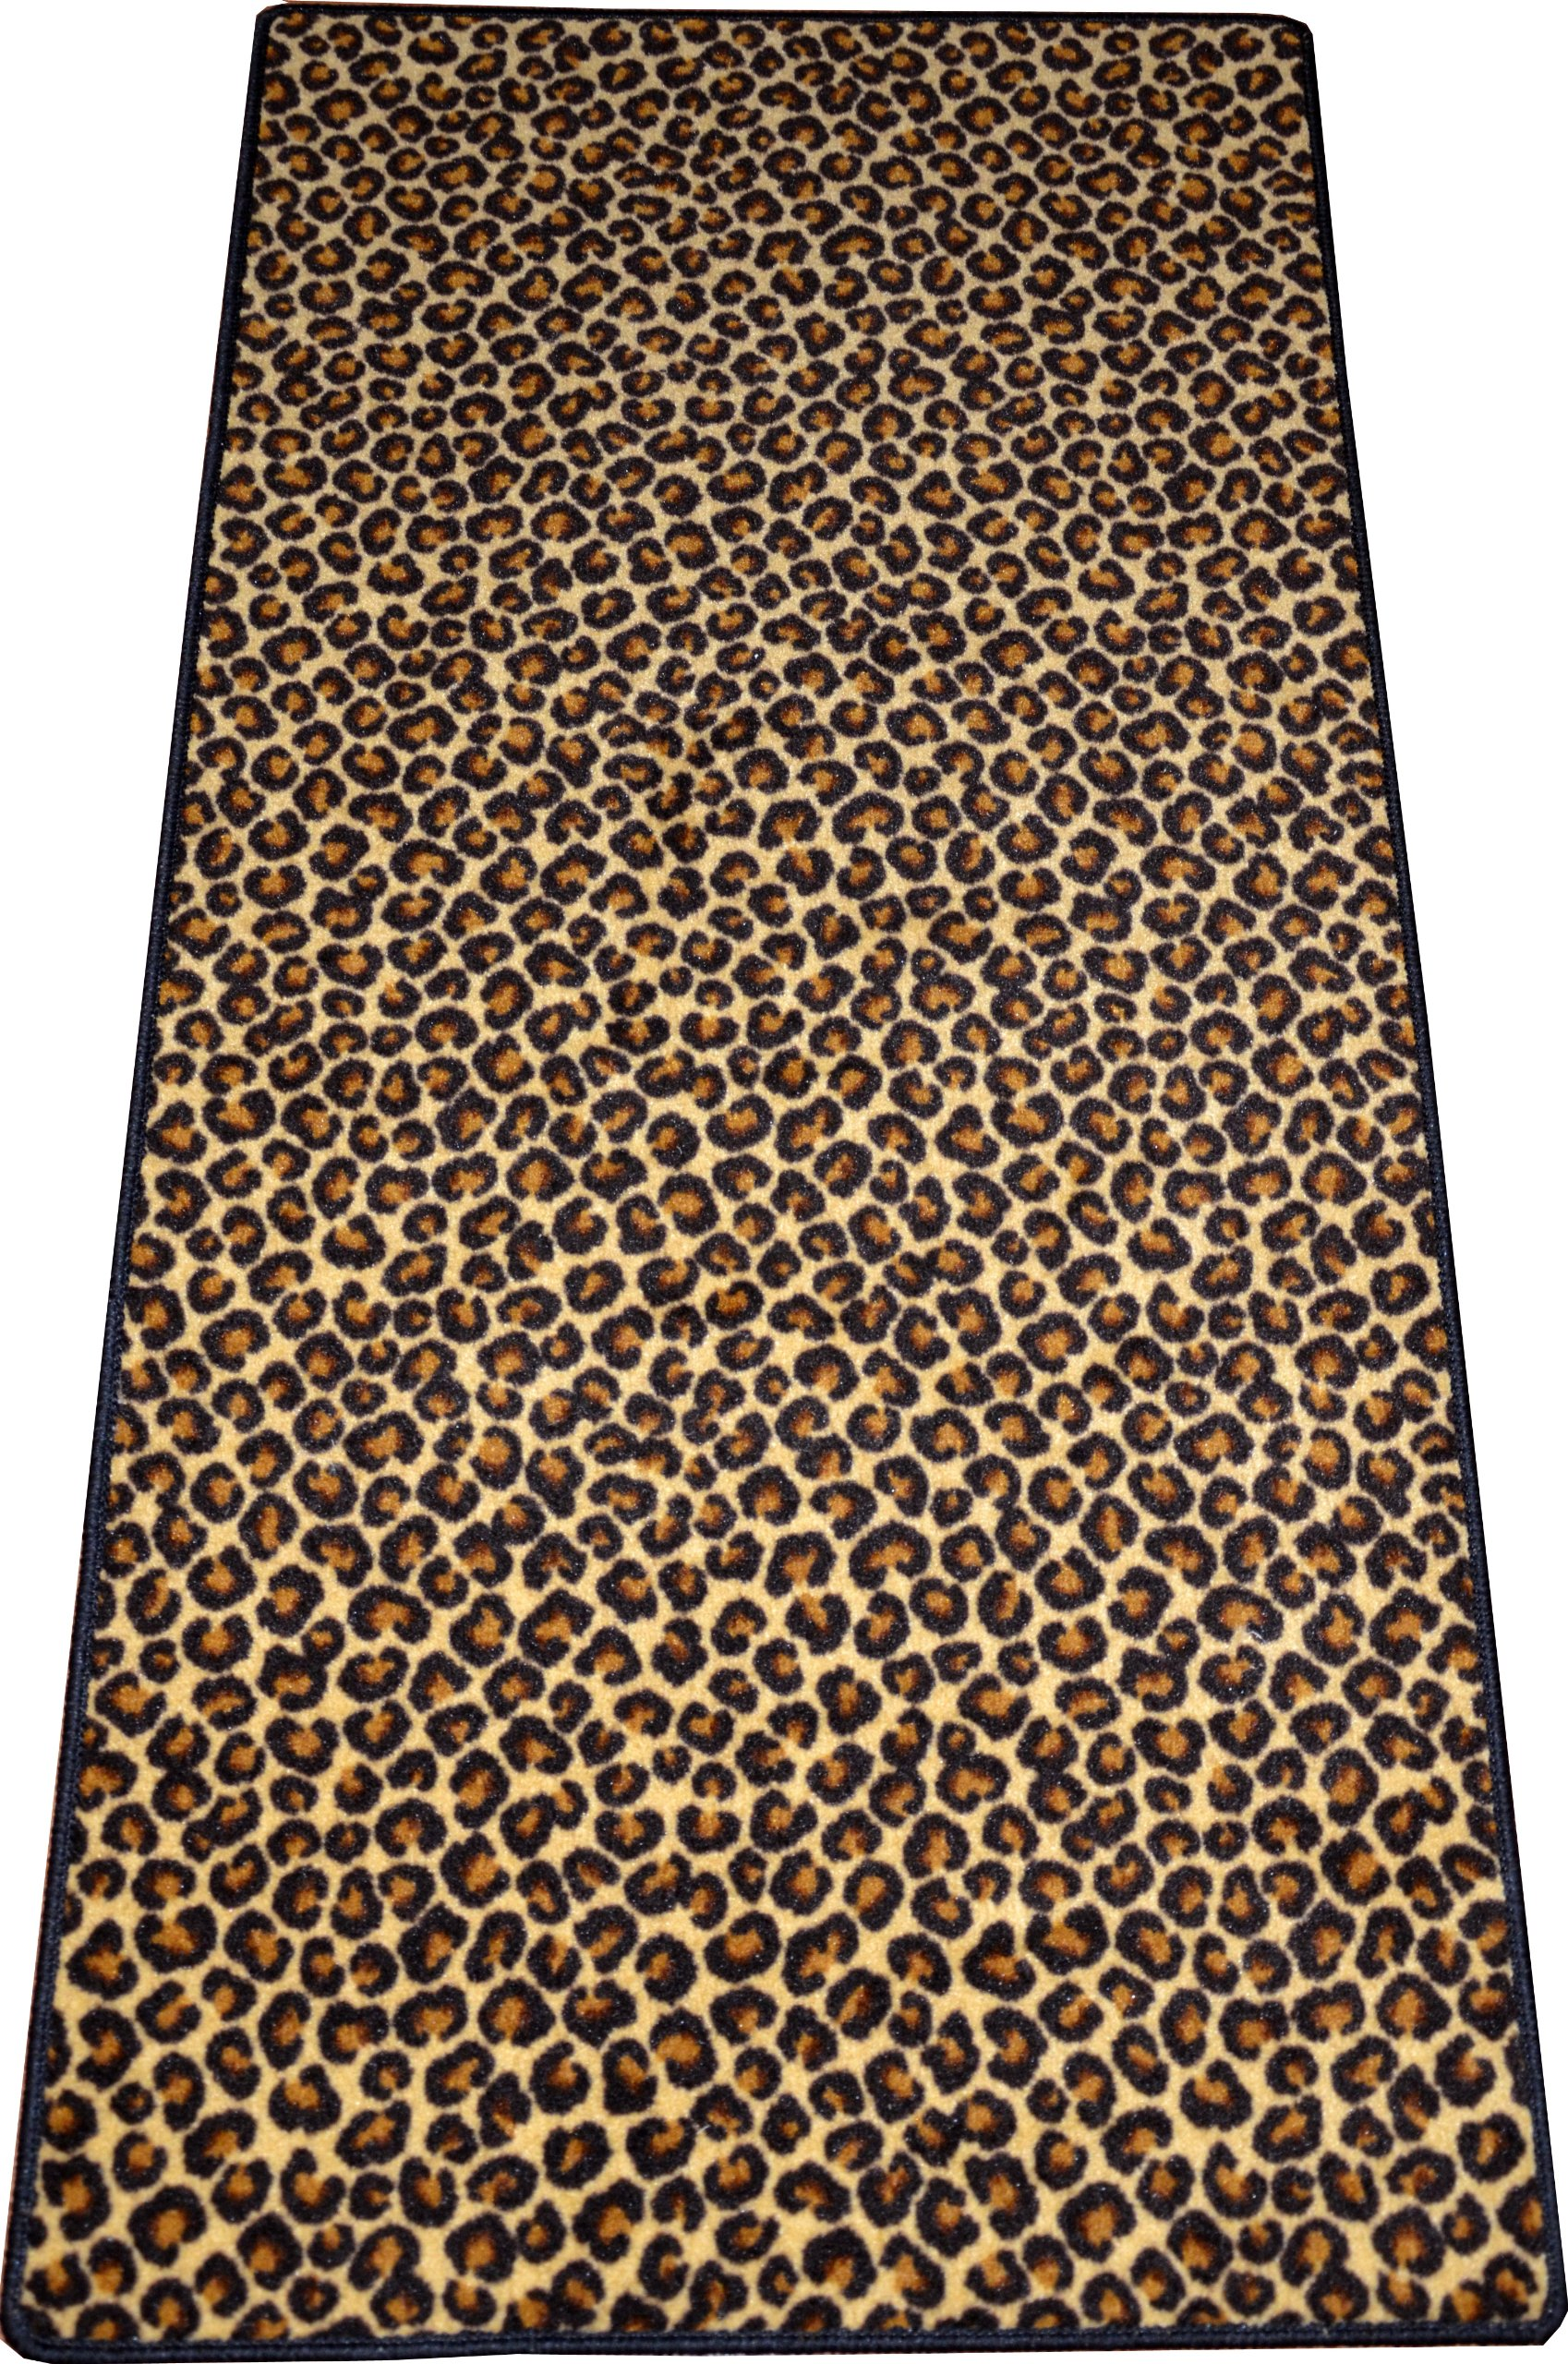 Dean Leopard Animal Print 30'' x 6' Carpet Runner Rug